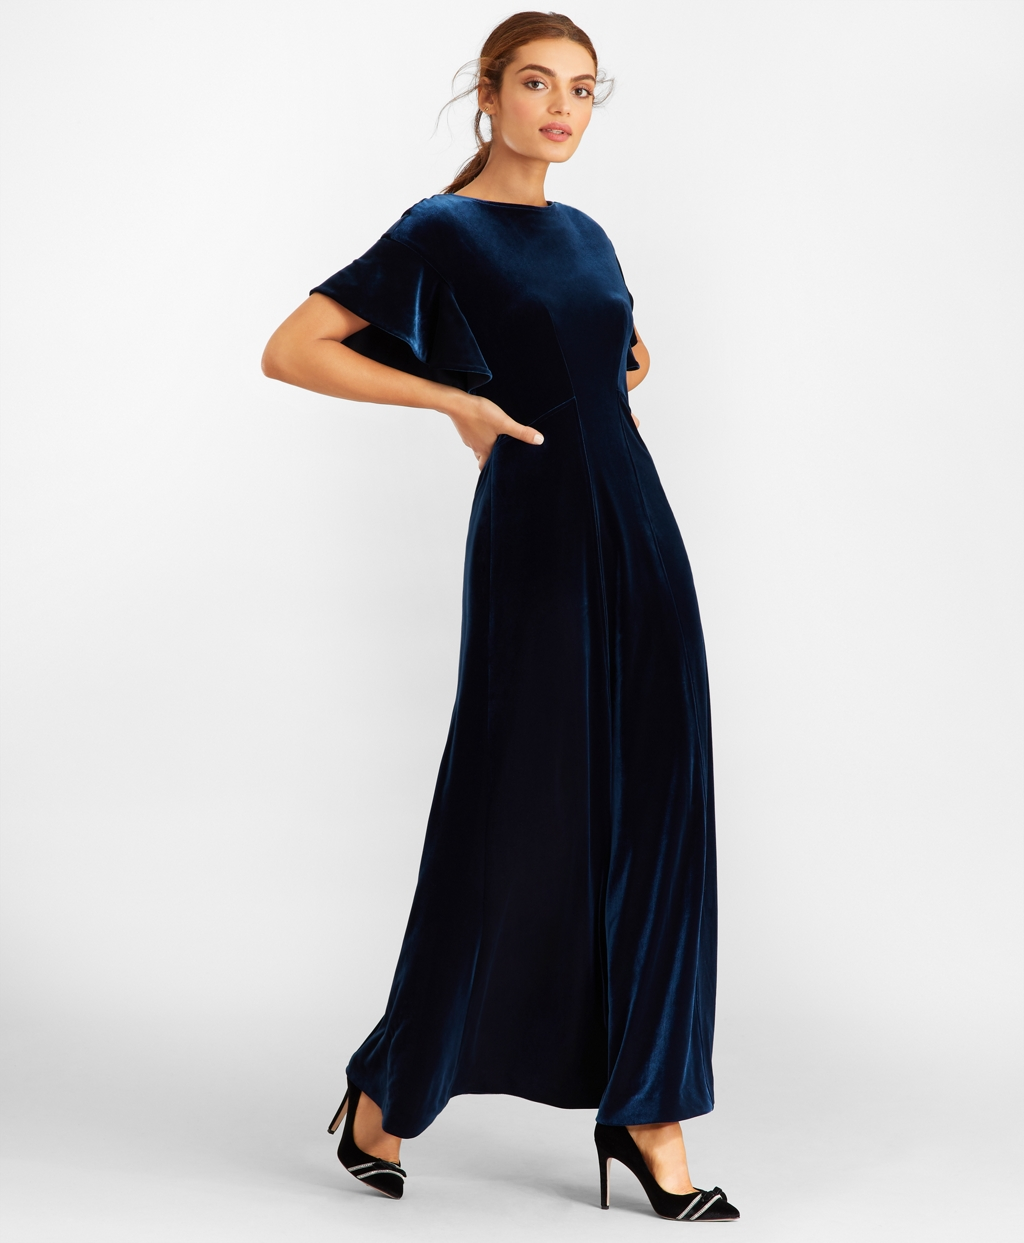 Vintage Evening Dresses and Formal Evening Gowns Brooks Brothers Womens Velvet Gown $298.00 AT vintagedancer.com